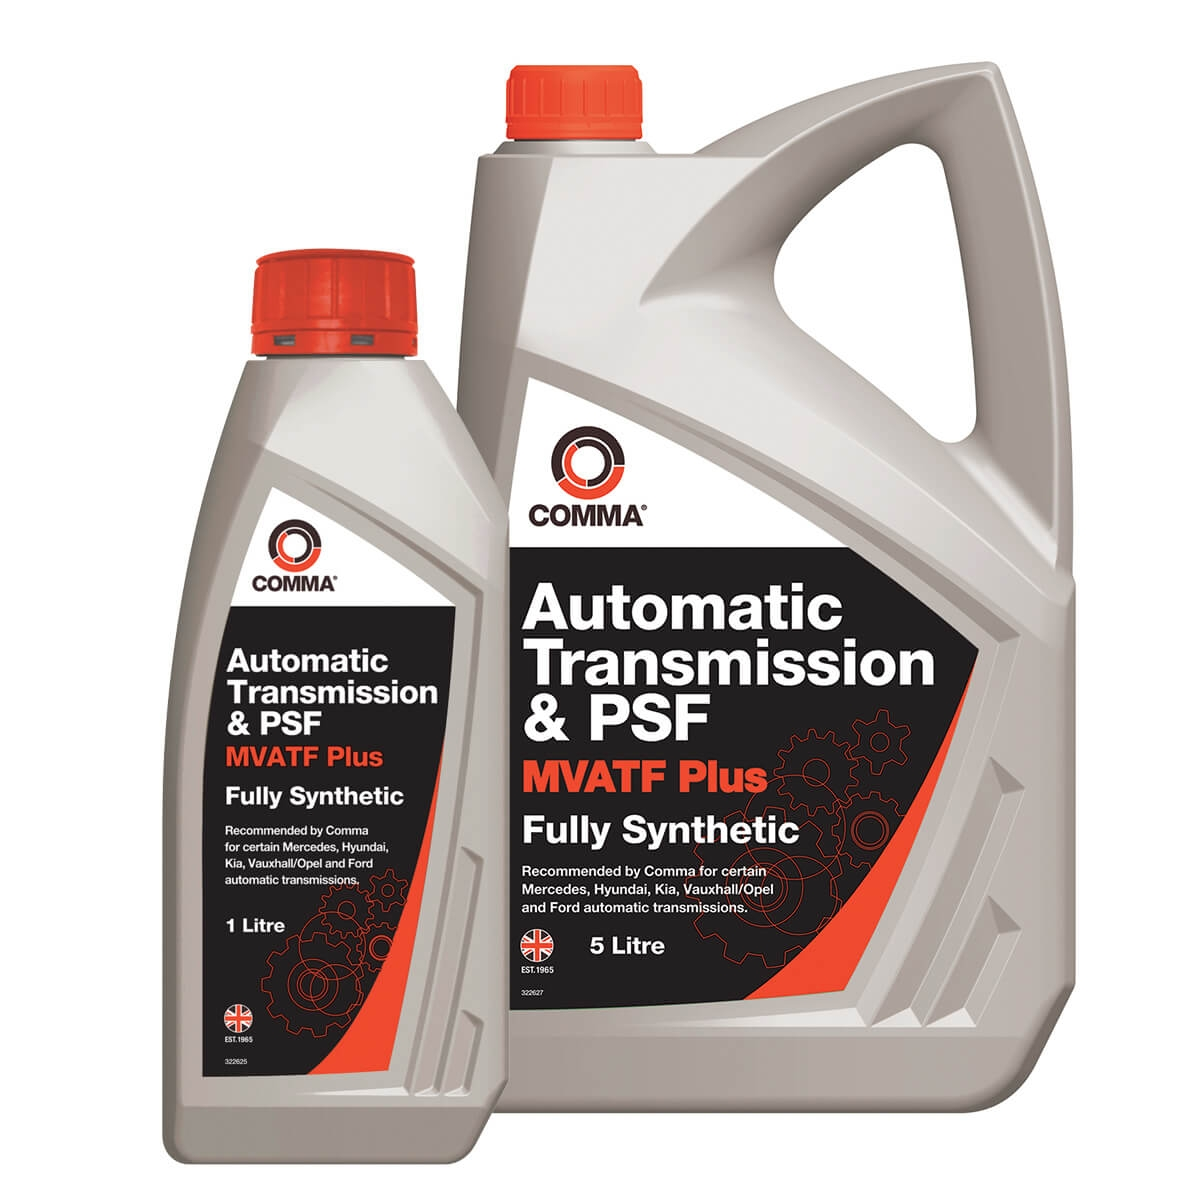 AUDI S5 Automatic Transmission Oil